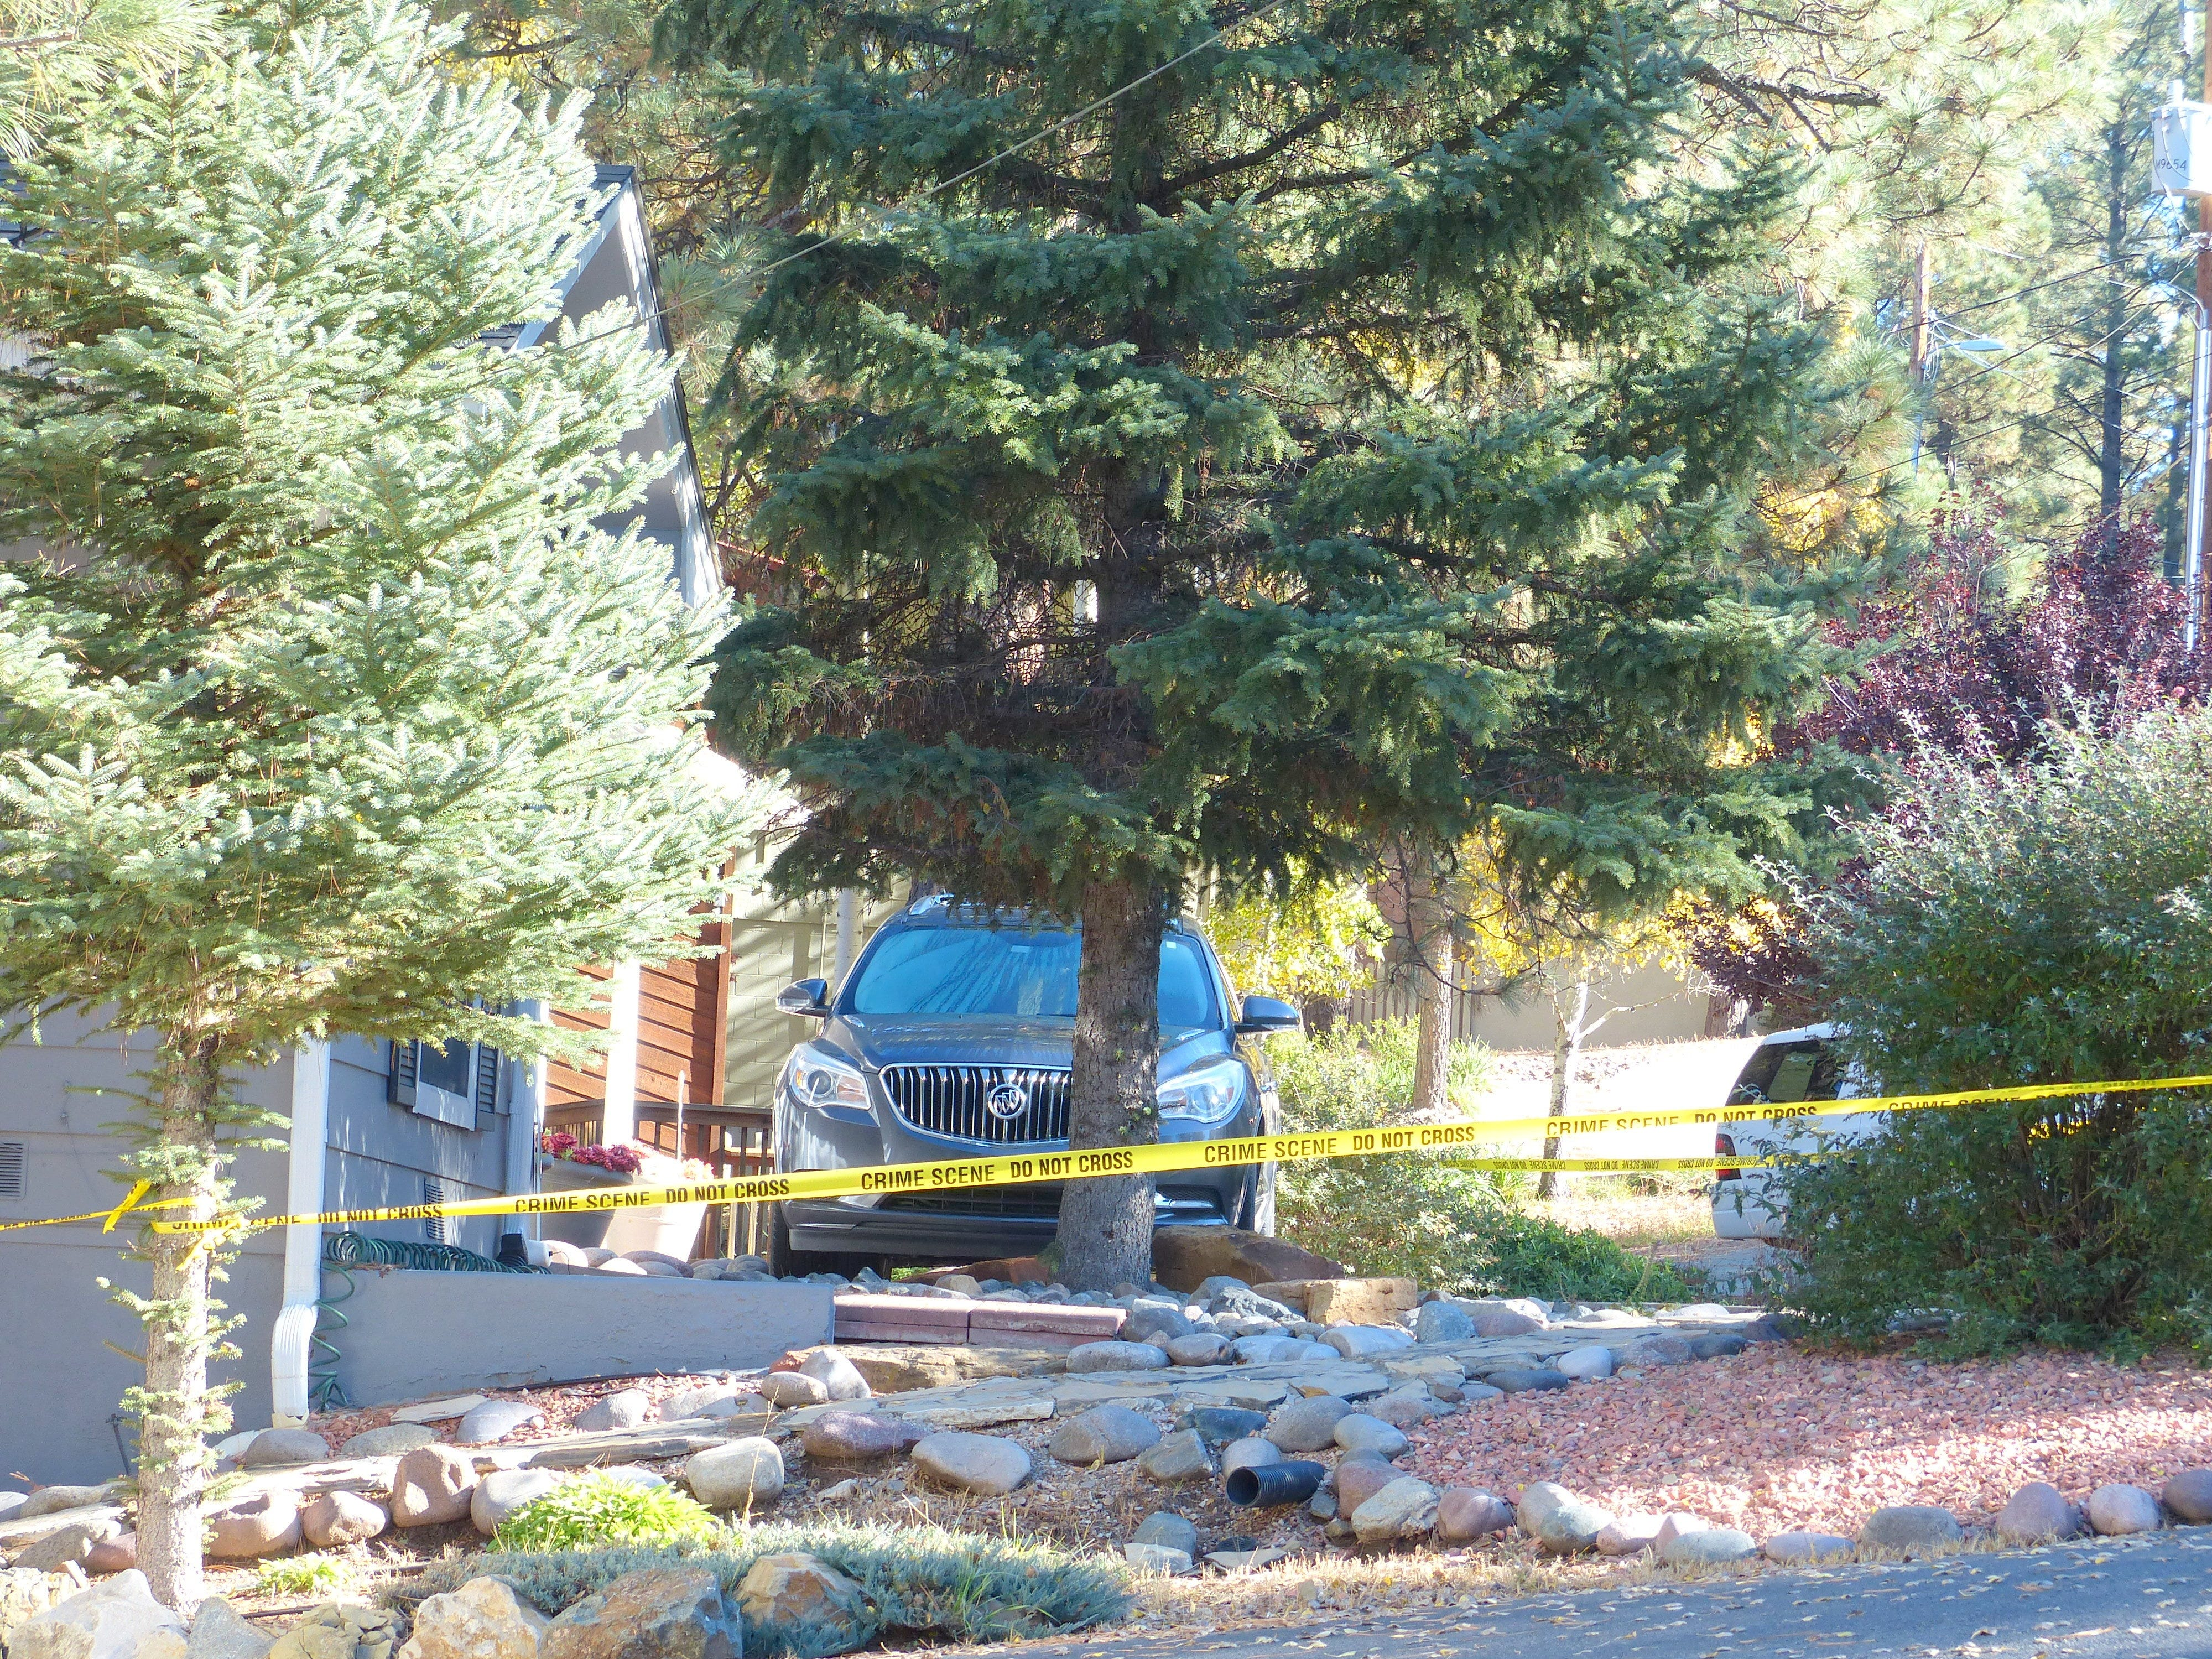 One person fatally shot, another wounded in Ruidoso incident